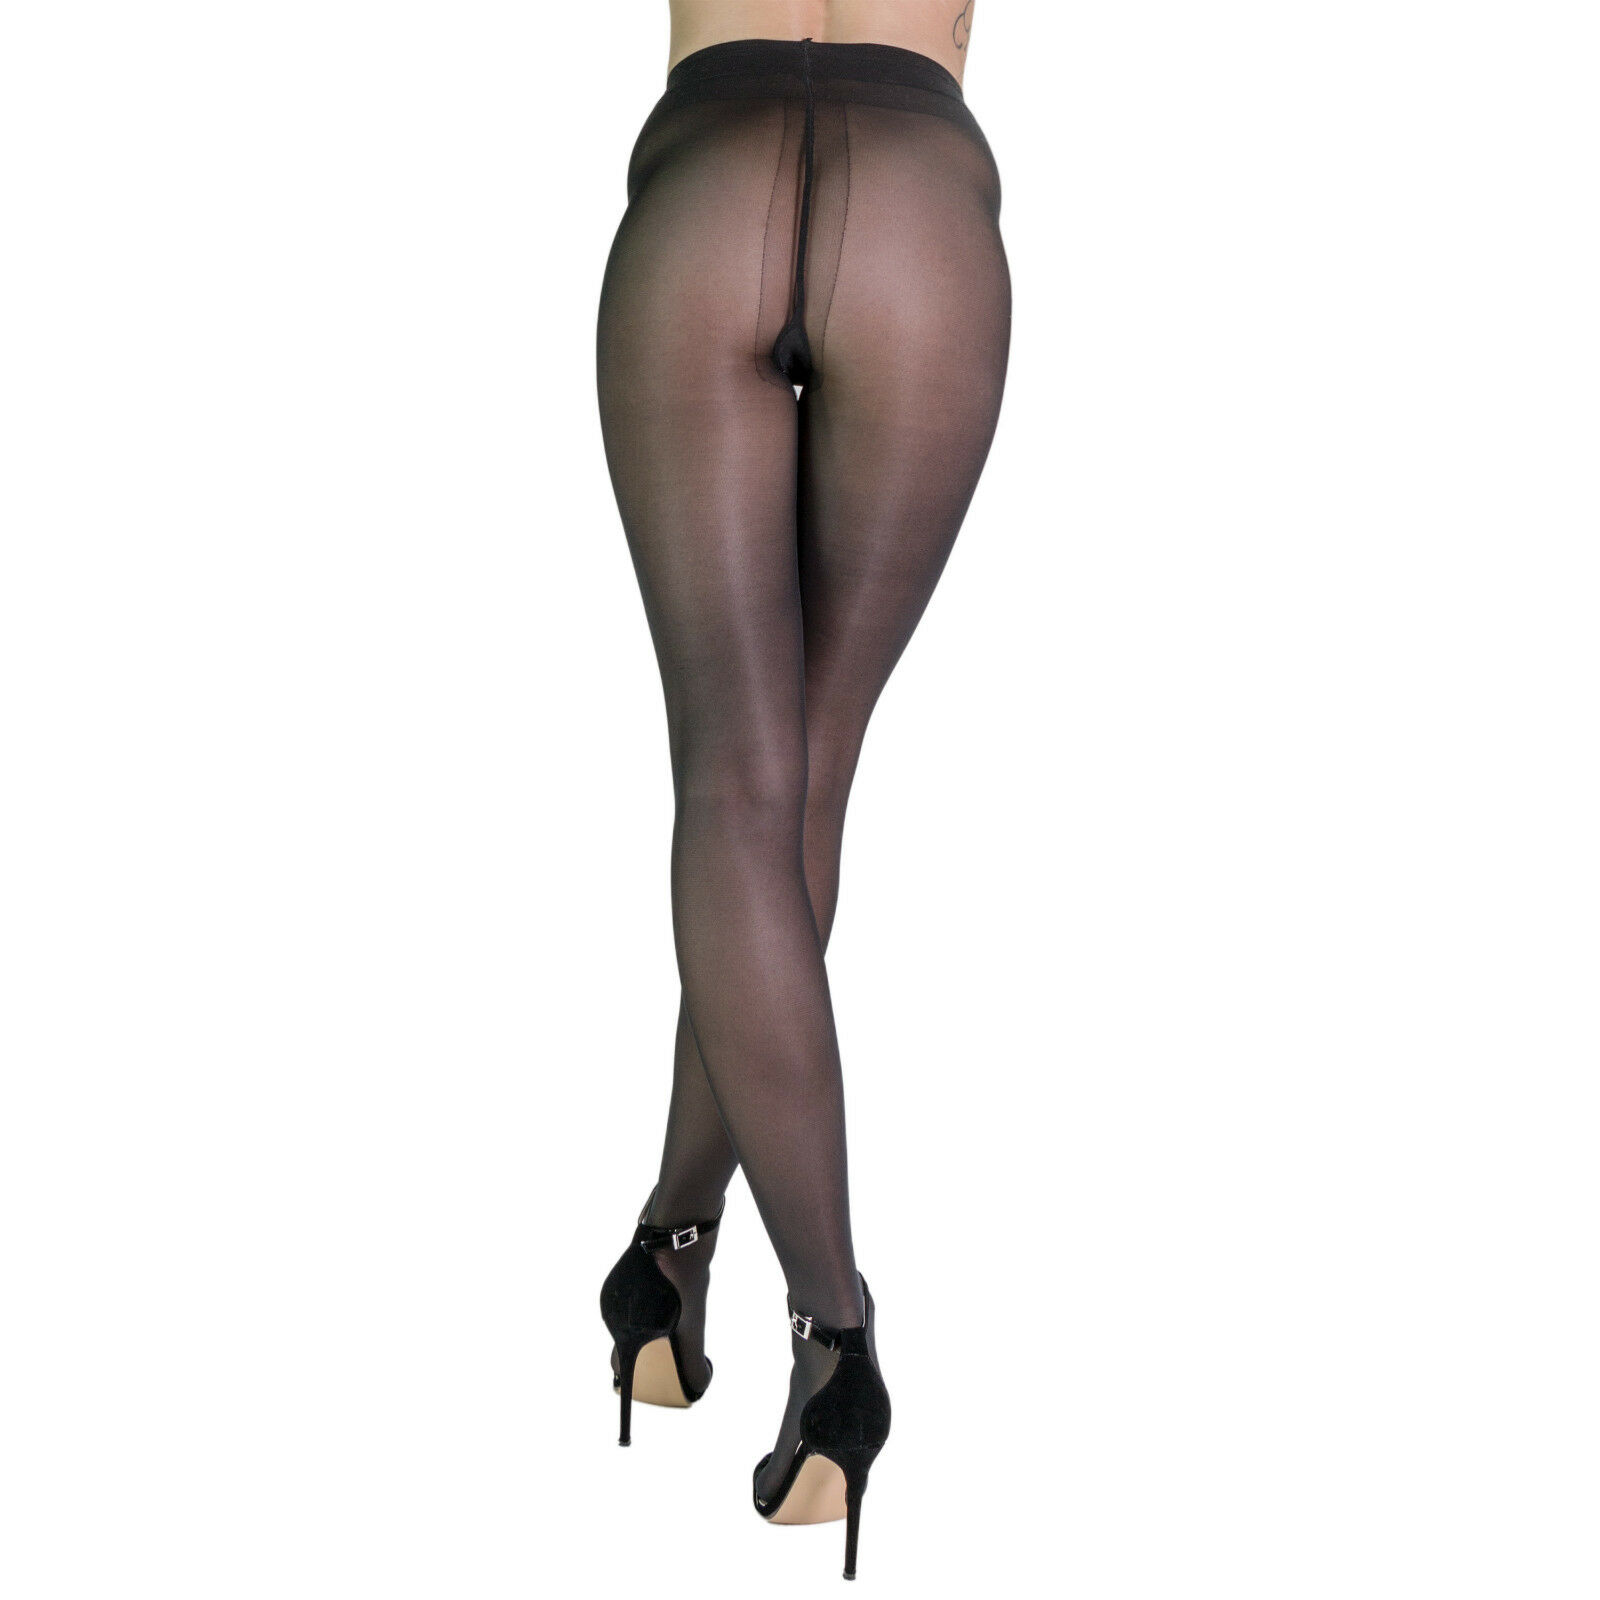 Women view pantyhose as constrictive